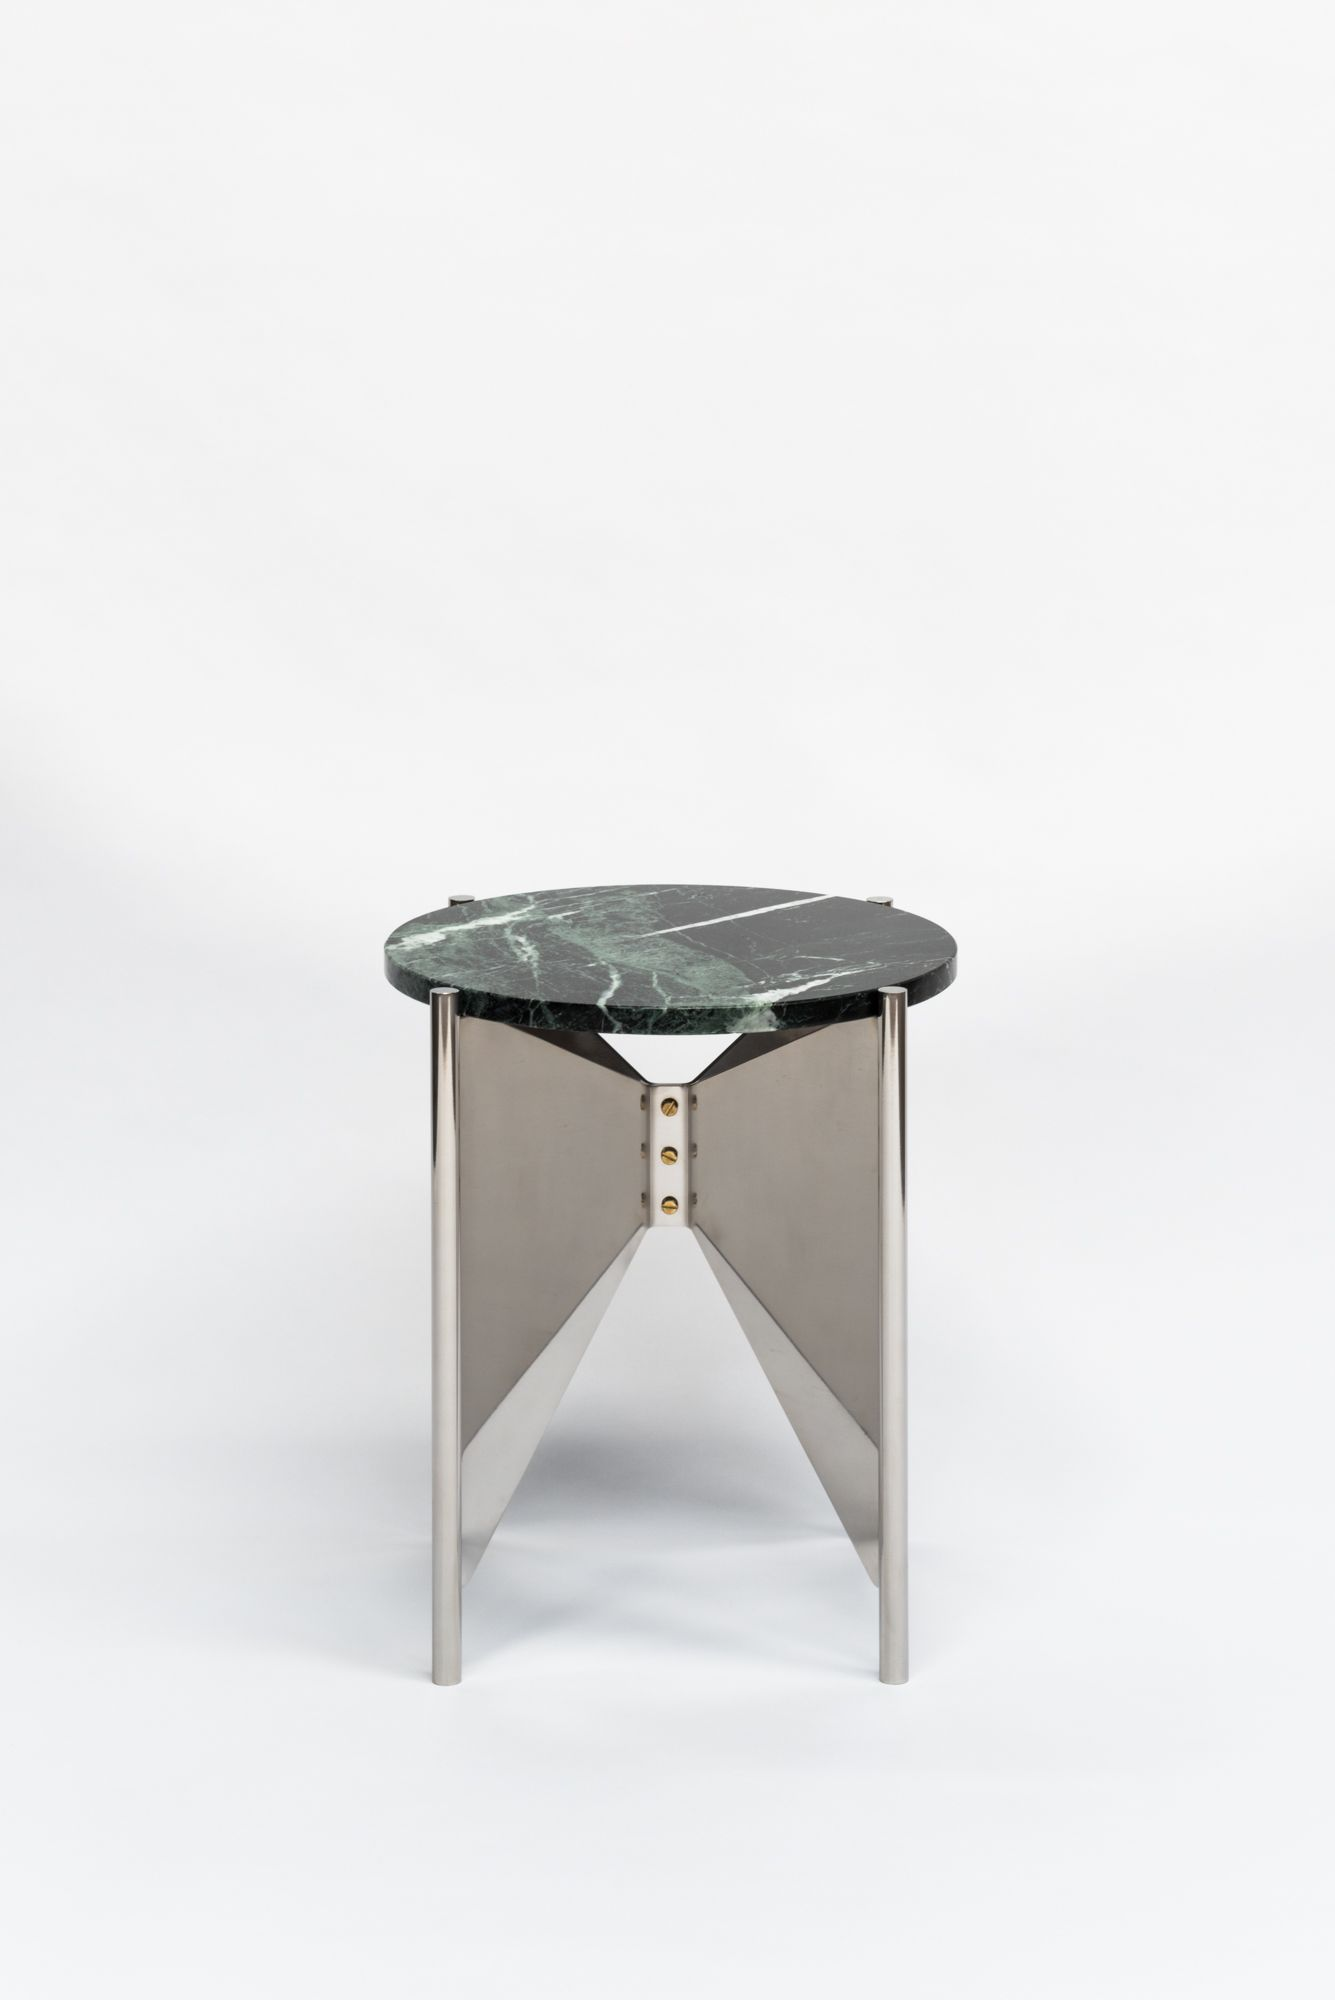 Tables u accessories this collection commences with the bermondsey